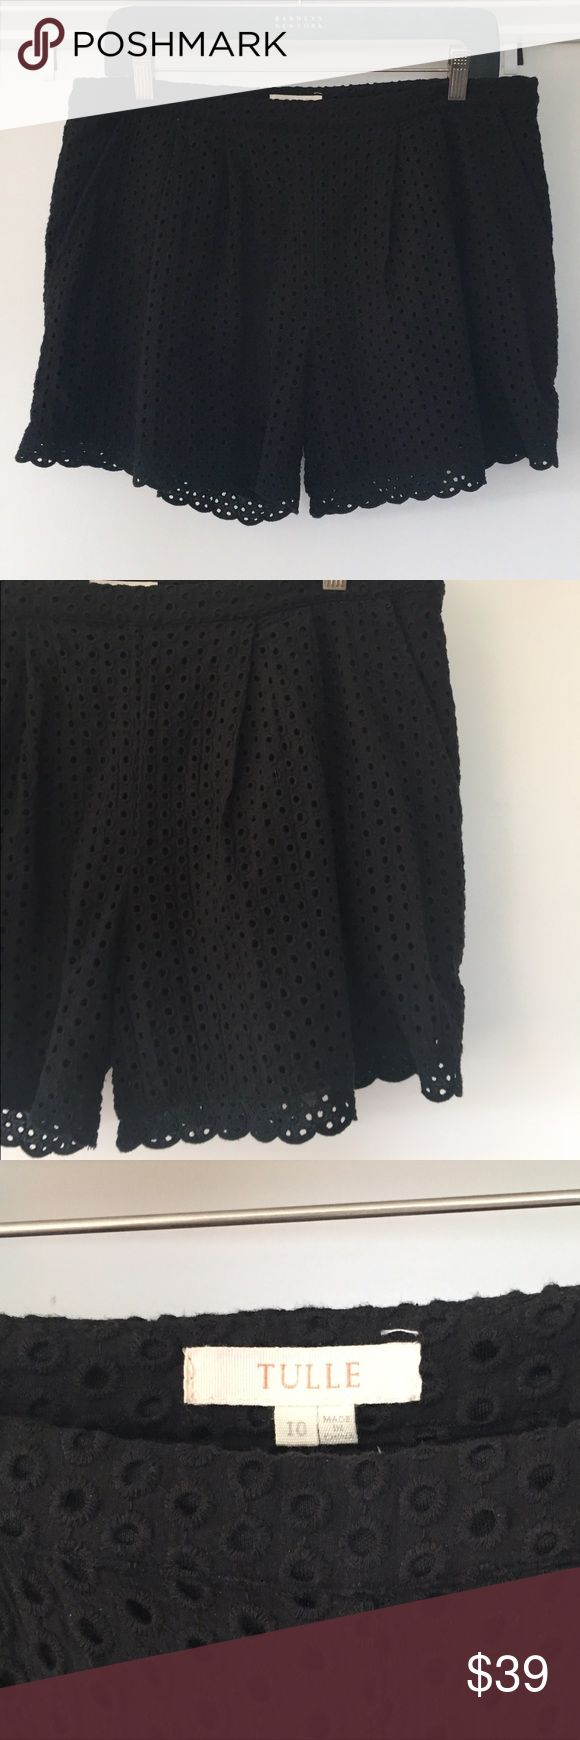 Eyelet Shorts Boho Festival Style These black eyelet shorts have a side zip which is very figure flattering. Worn only once and in excellent condition. Great eyelet detail at hem. Tulle Shorts